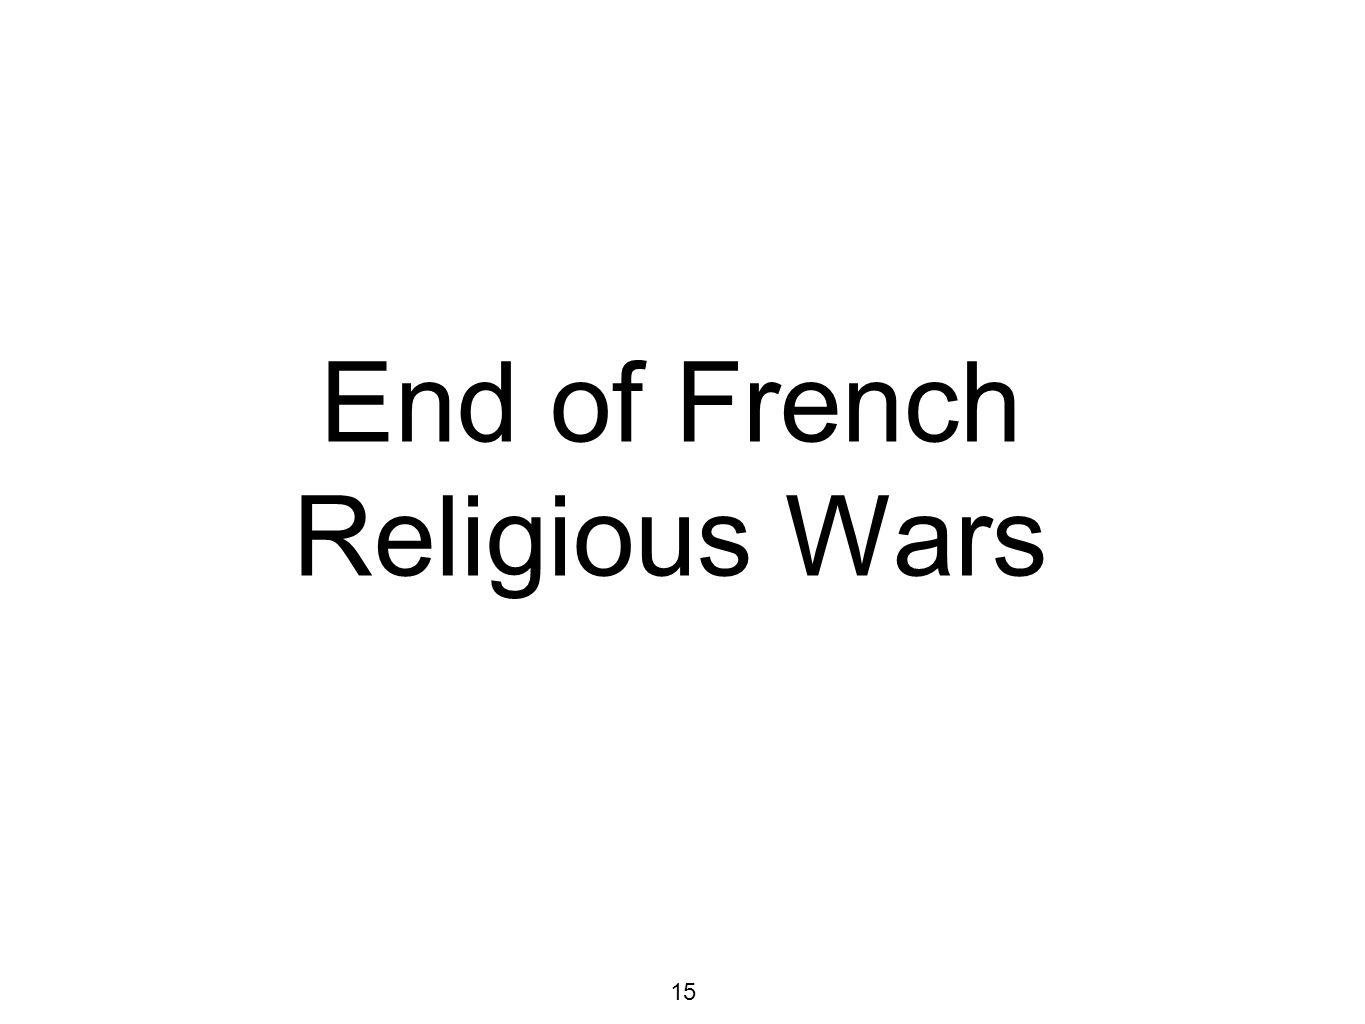 End of French Religious Wars